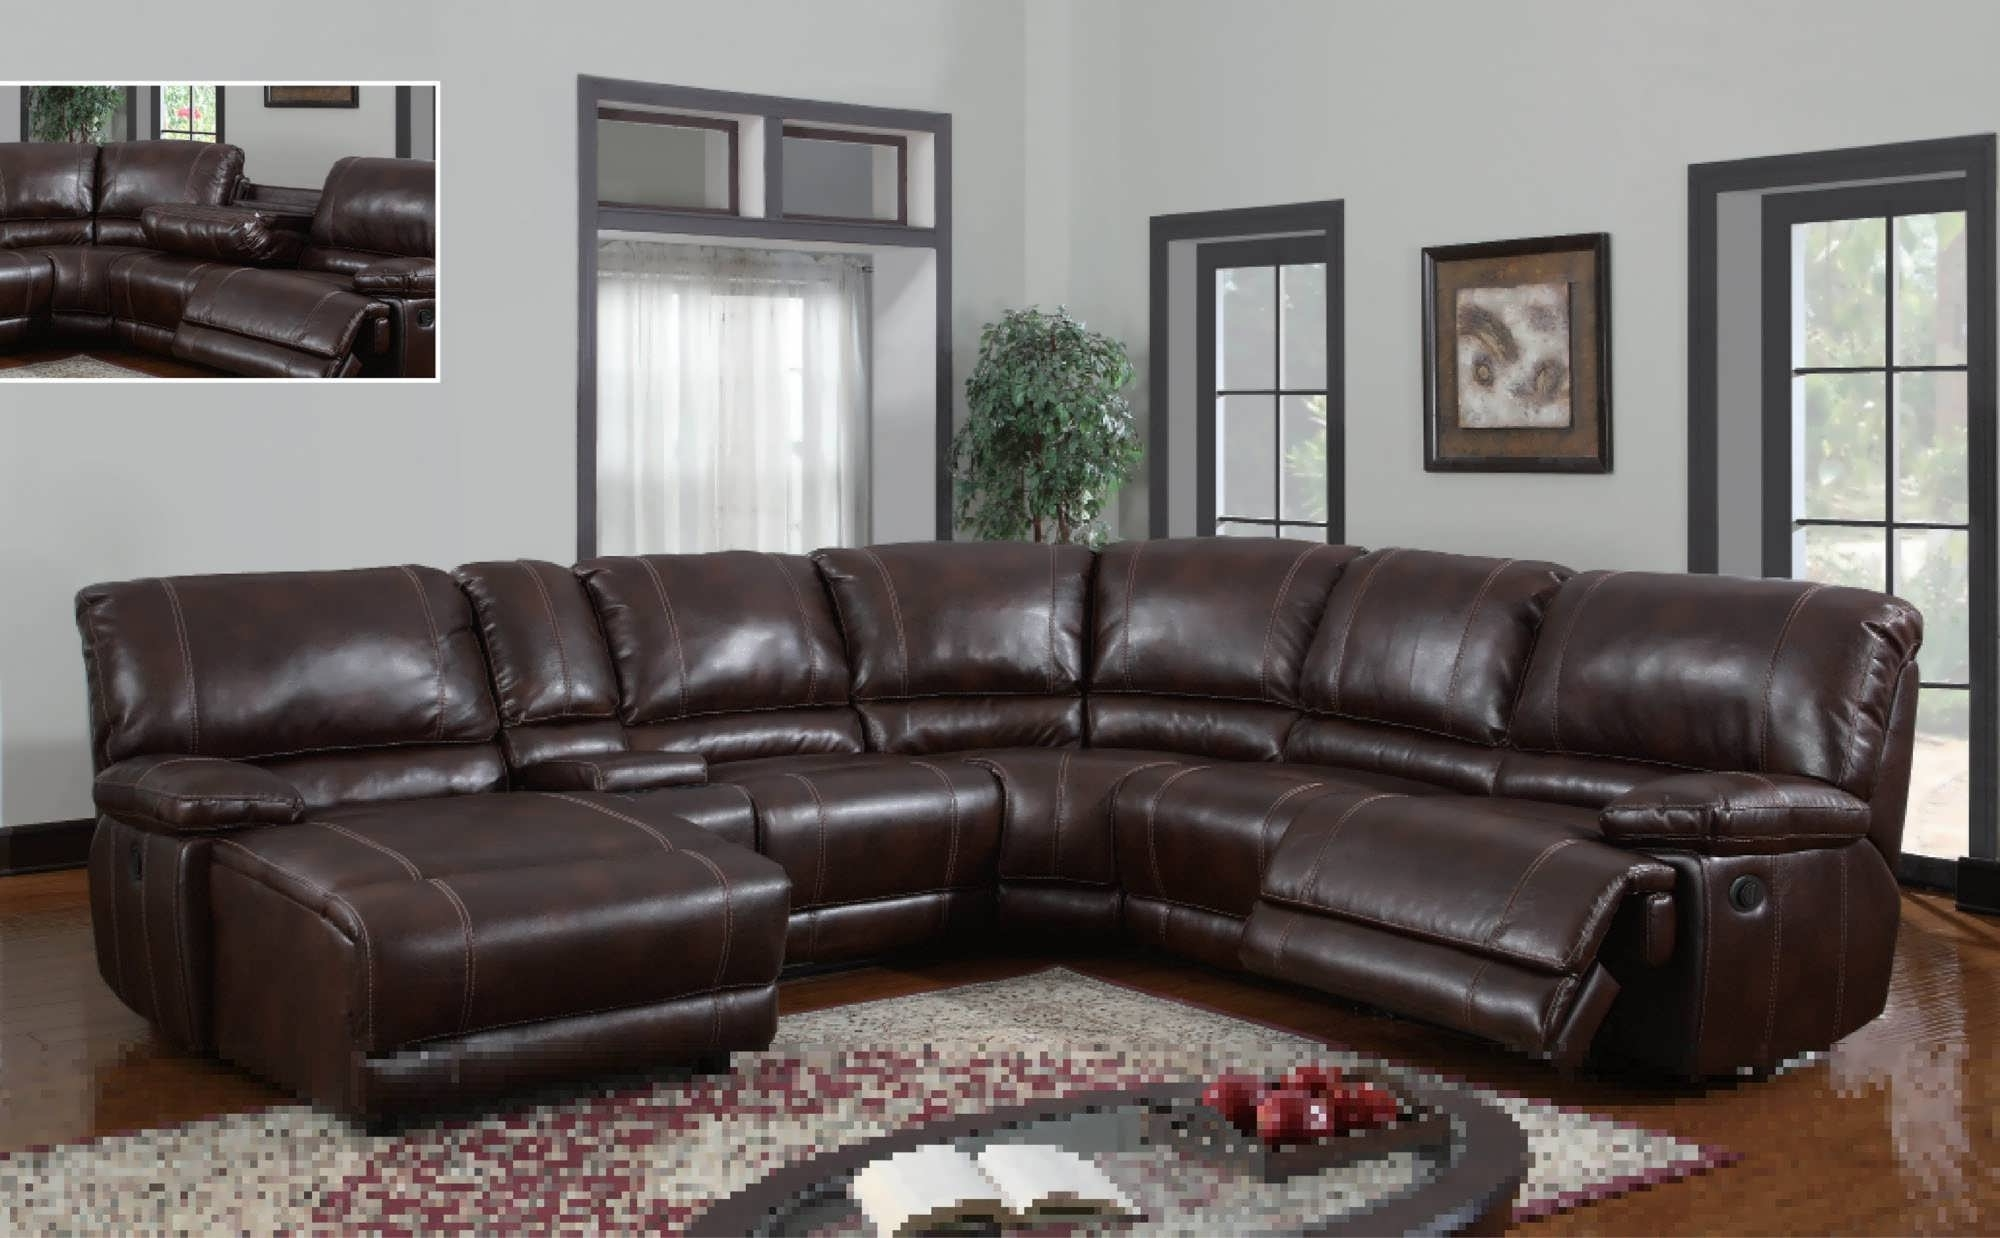 Sofa : Small Leather Sectional Modern Sectional Living Room Throughout Newest Genuine Leather Sectionals With Chaise (View 6 of 15)